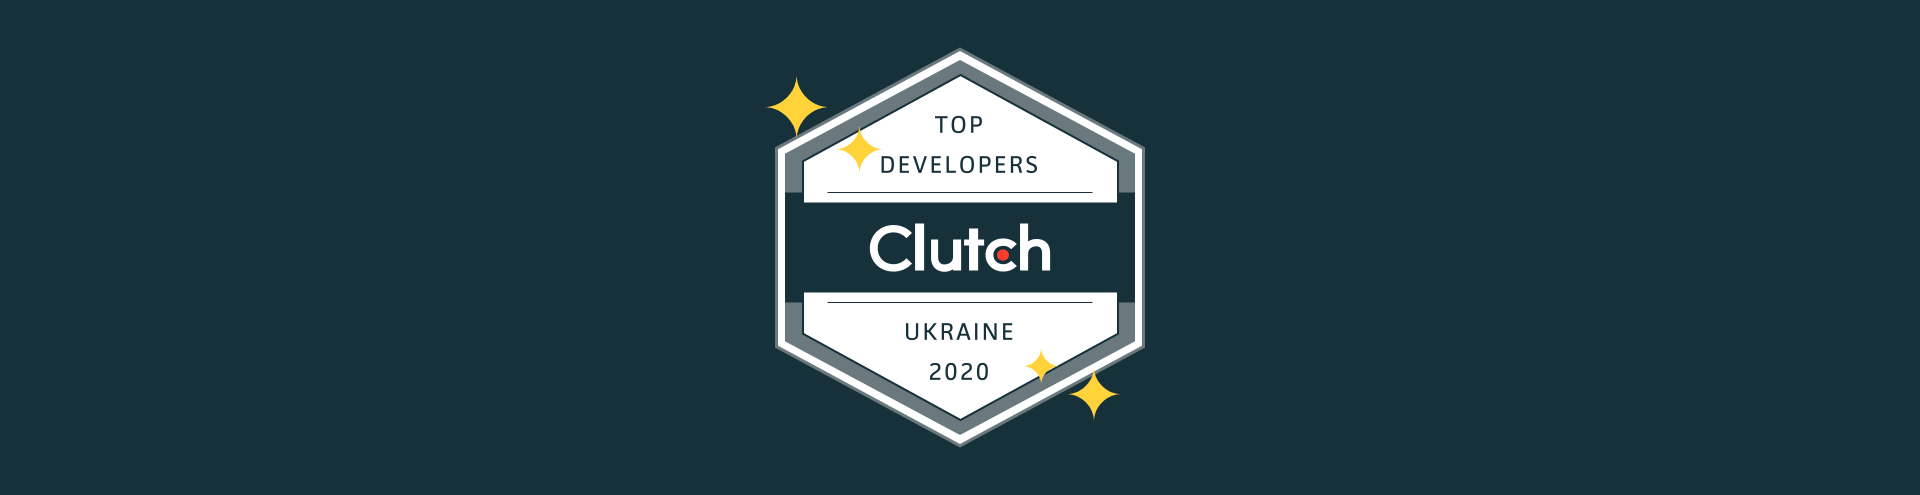 Apiko Named as one of Top Developers in Ukraine by Clutch